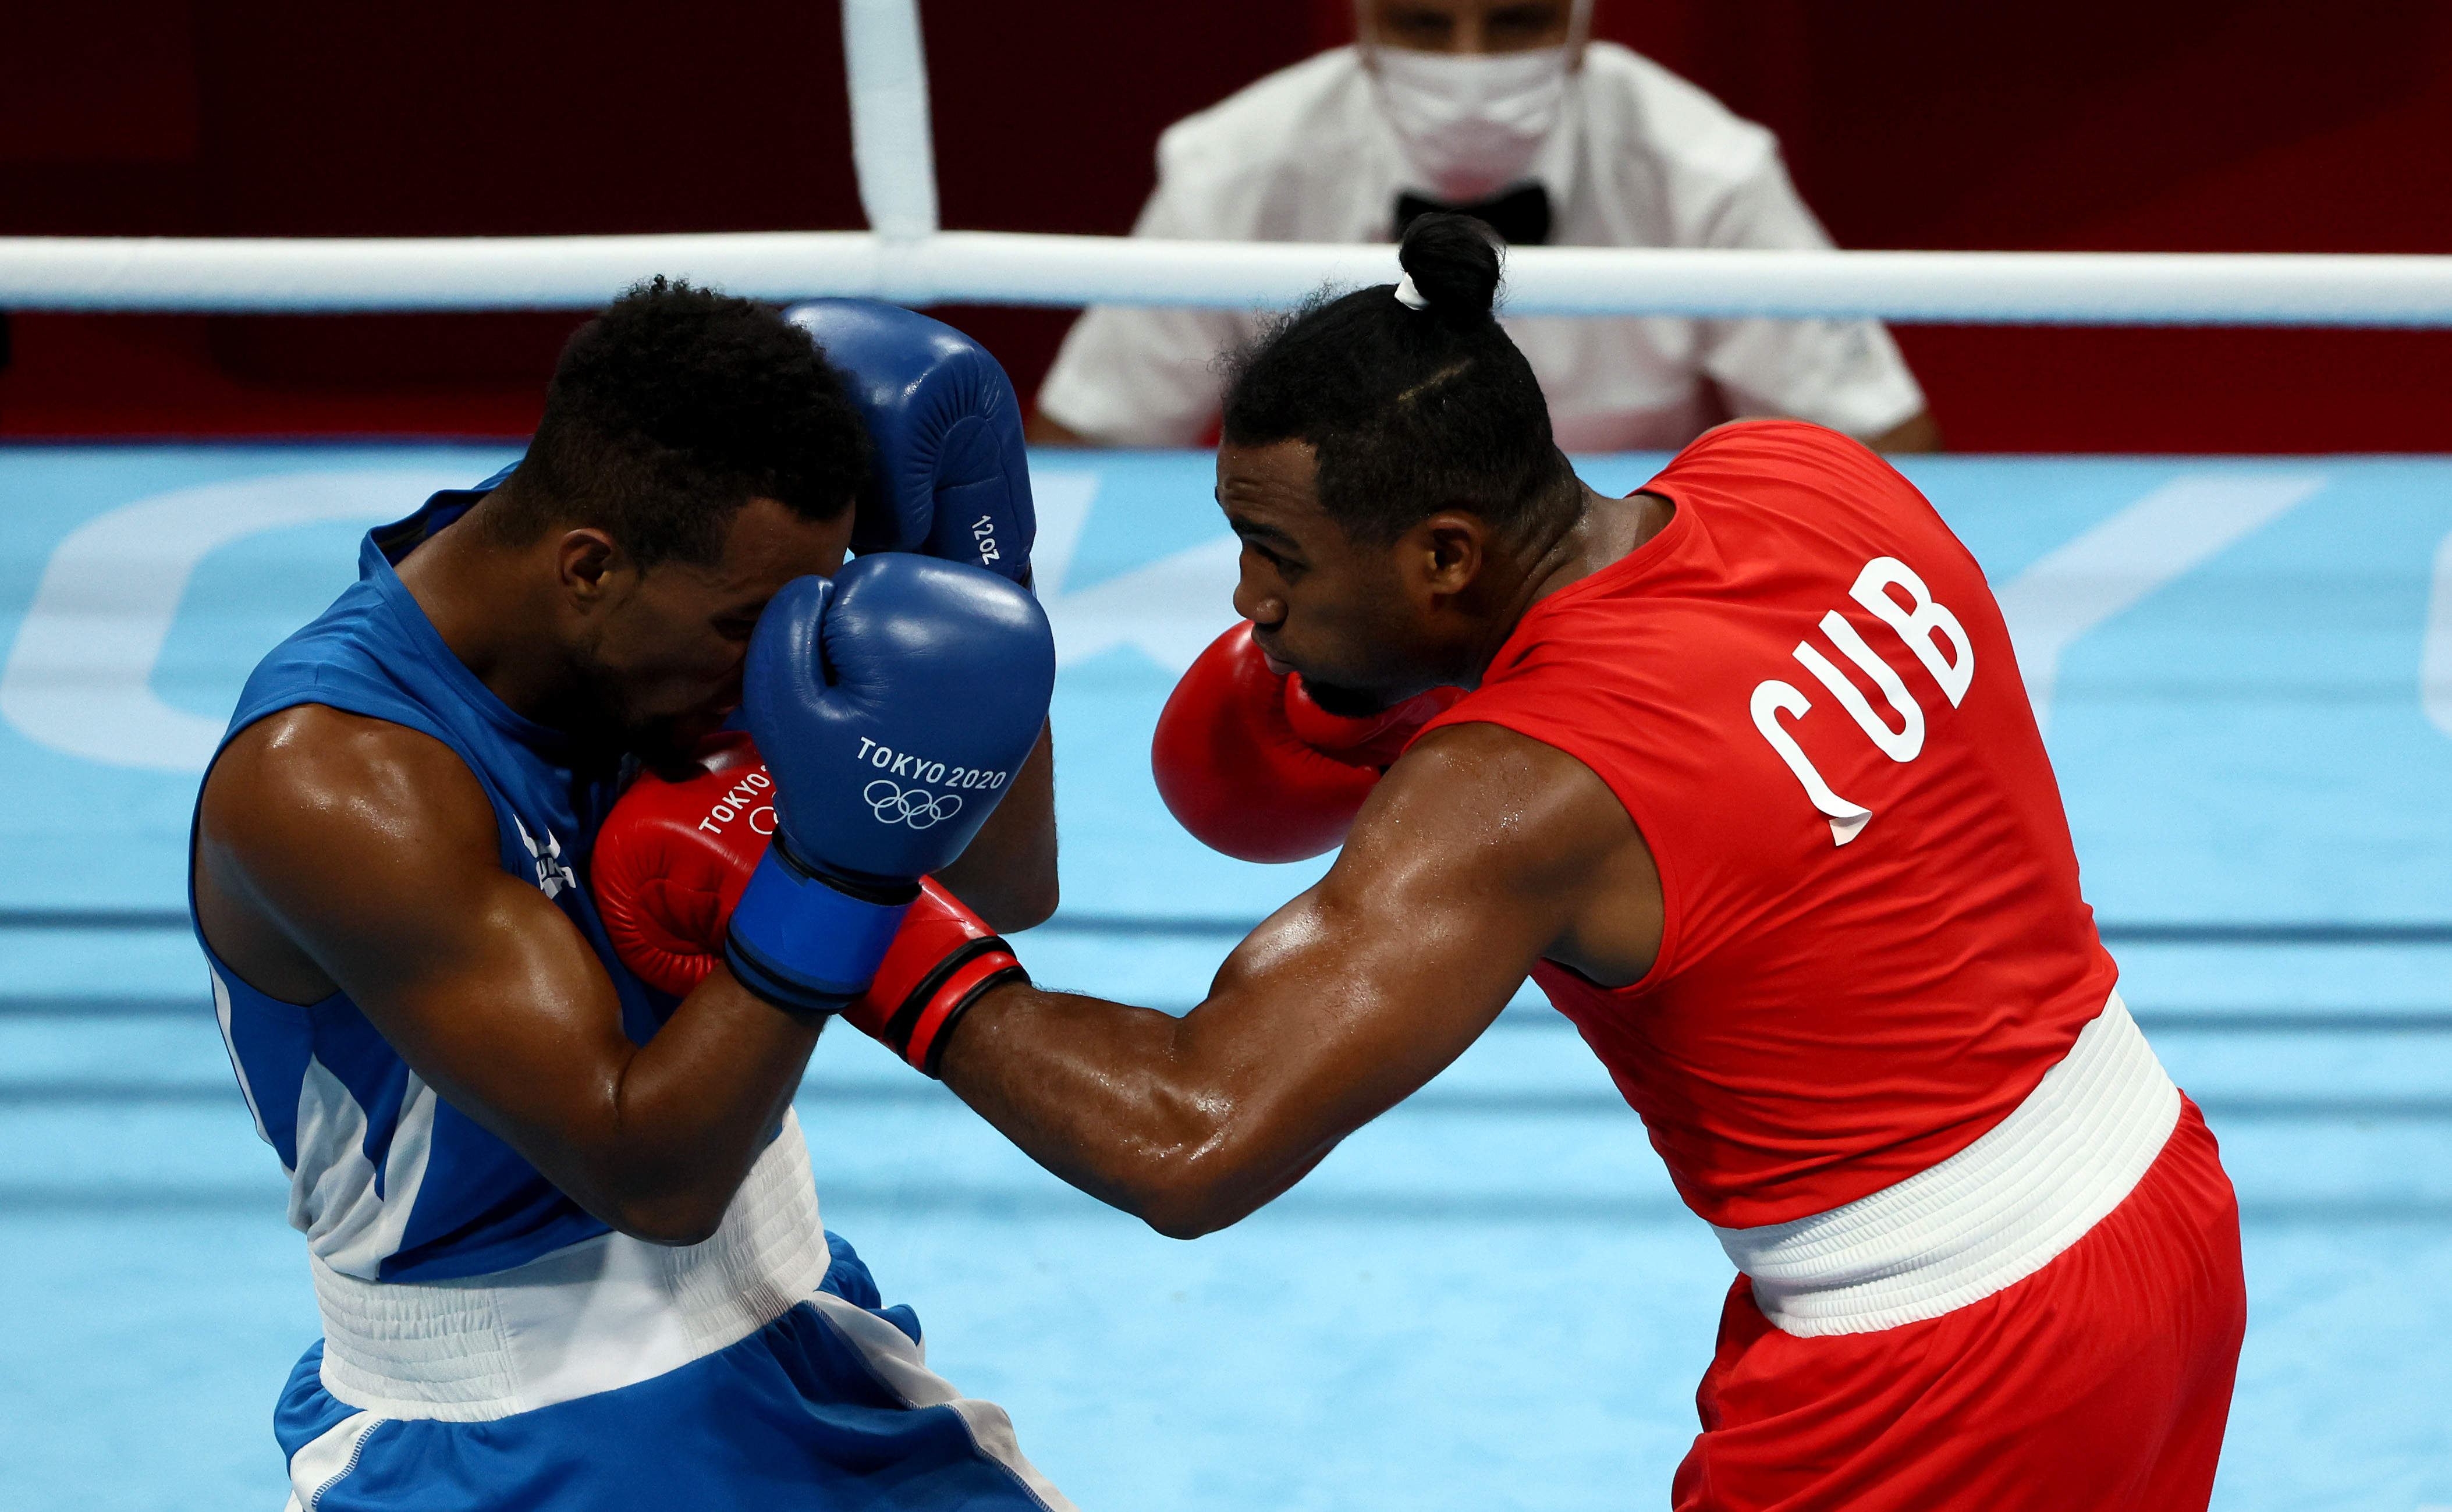 Arlen Lopez (red) of Team Cuba exchanges punches with Loren Berto Alfonso Dominguez of Team Azerbaijan during the Men's Light Heavy (75-81kg) semi final on day nine of the Tokyo 2020 Olympic Games at Kokugikan Arena on August 01, 2021 in Tokyo, Japan.